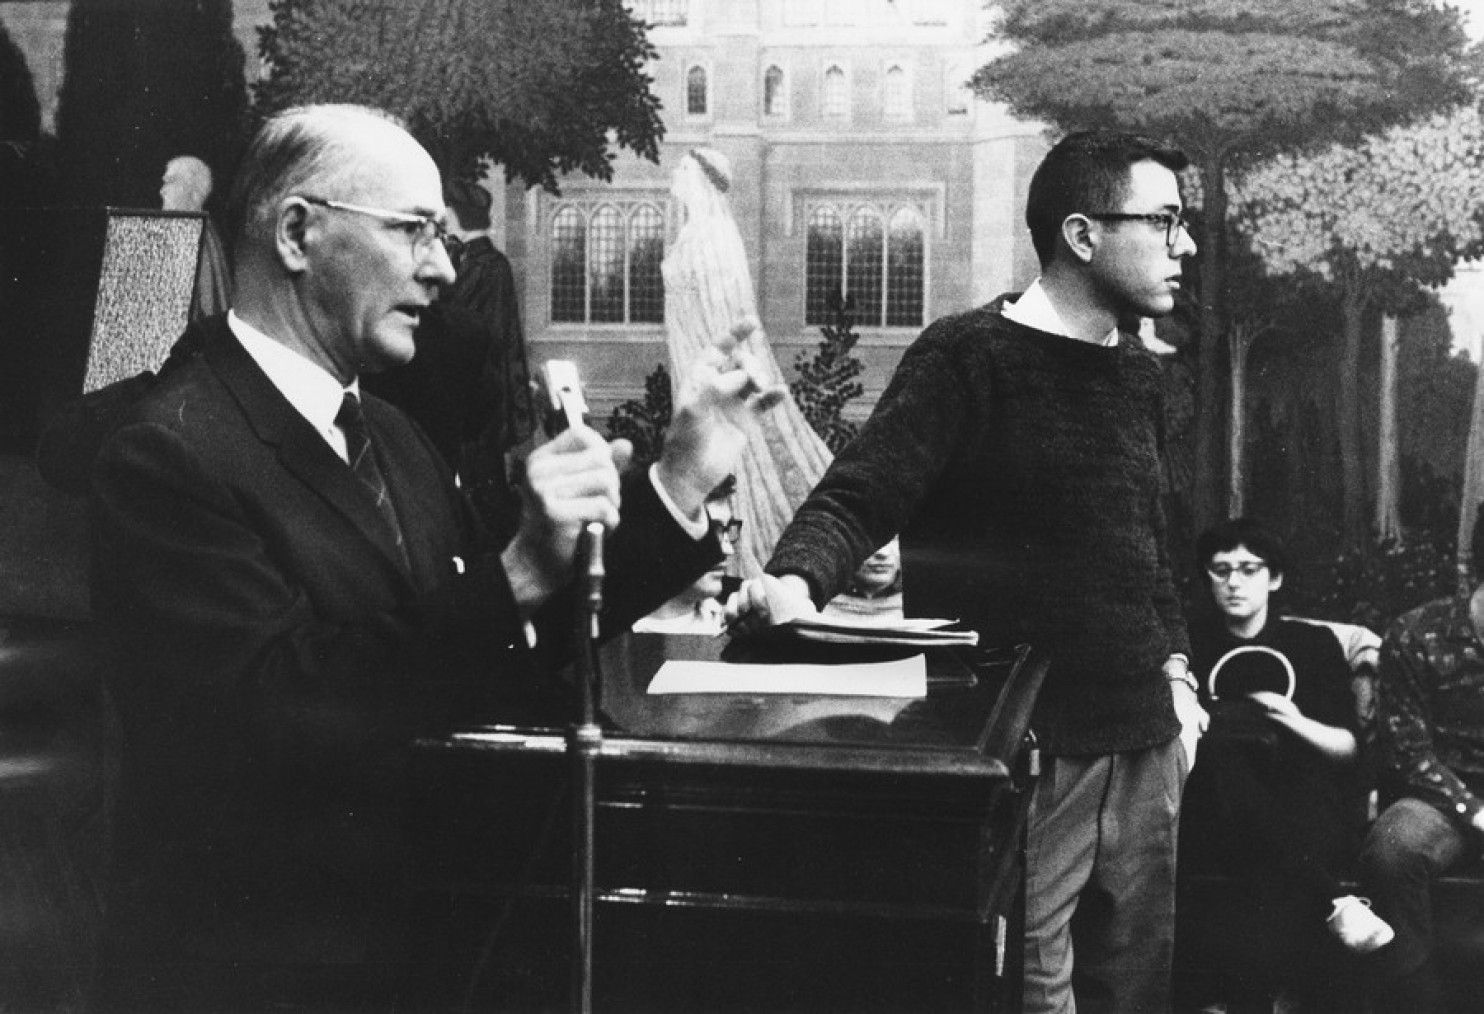 Bernie Sanders with University of Chicago President George Beadle Danny Lyon photo